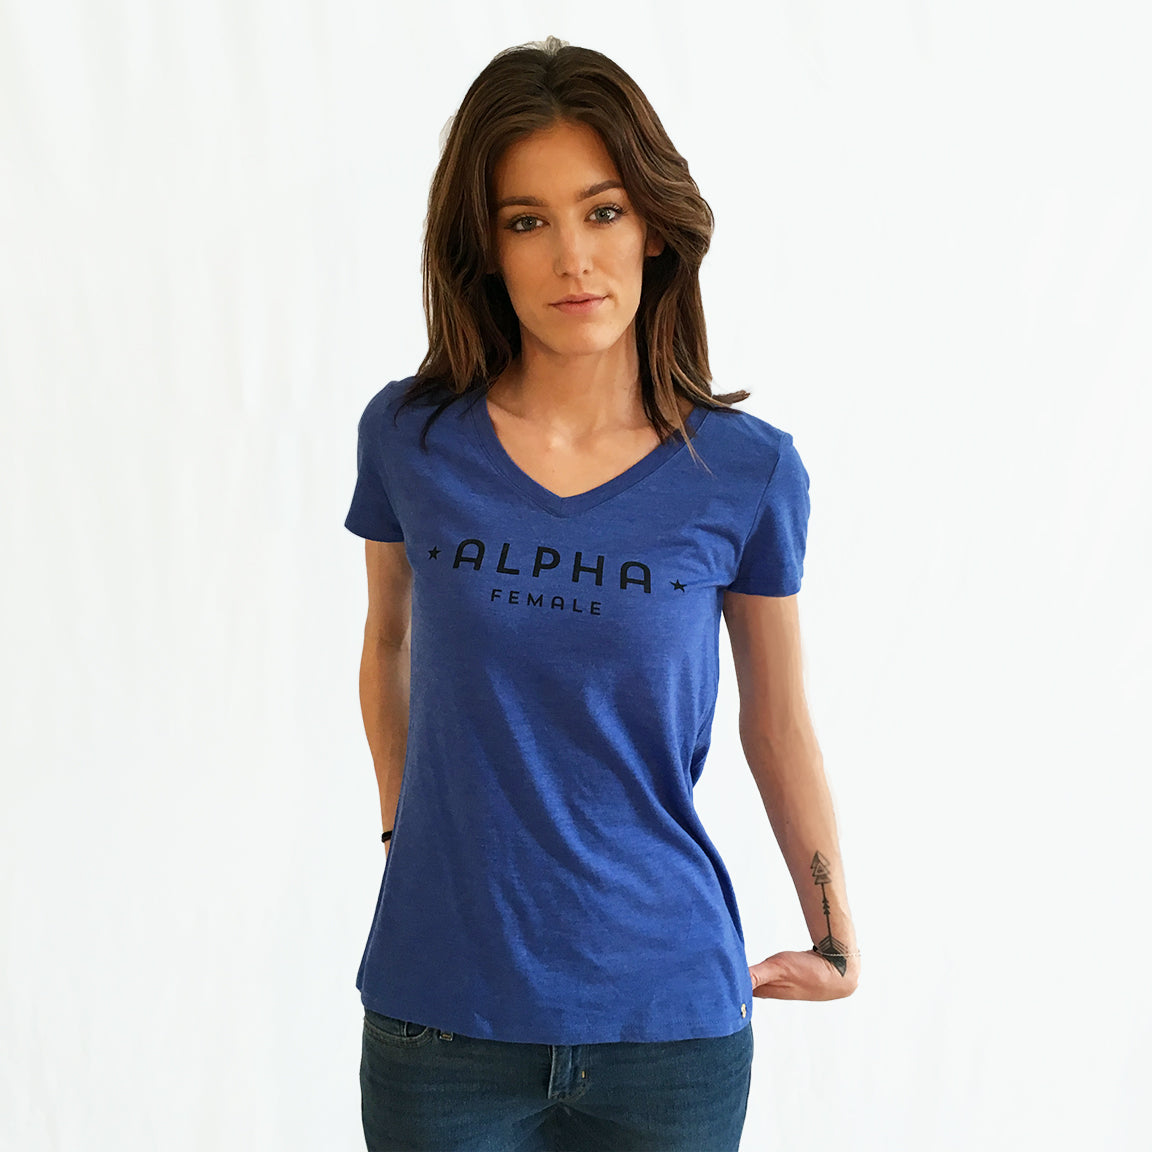 One Plane Jane Alpha Female V-Neck Tee shown in royal blue frost with black letters. Super soft tri-blend.. Inspired by pilots, aviators but perfect for all strong independent women.